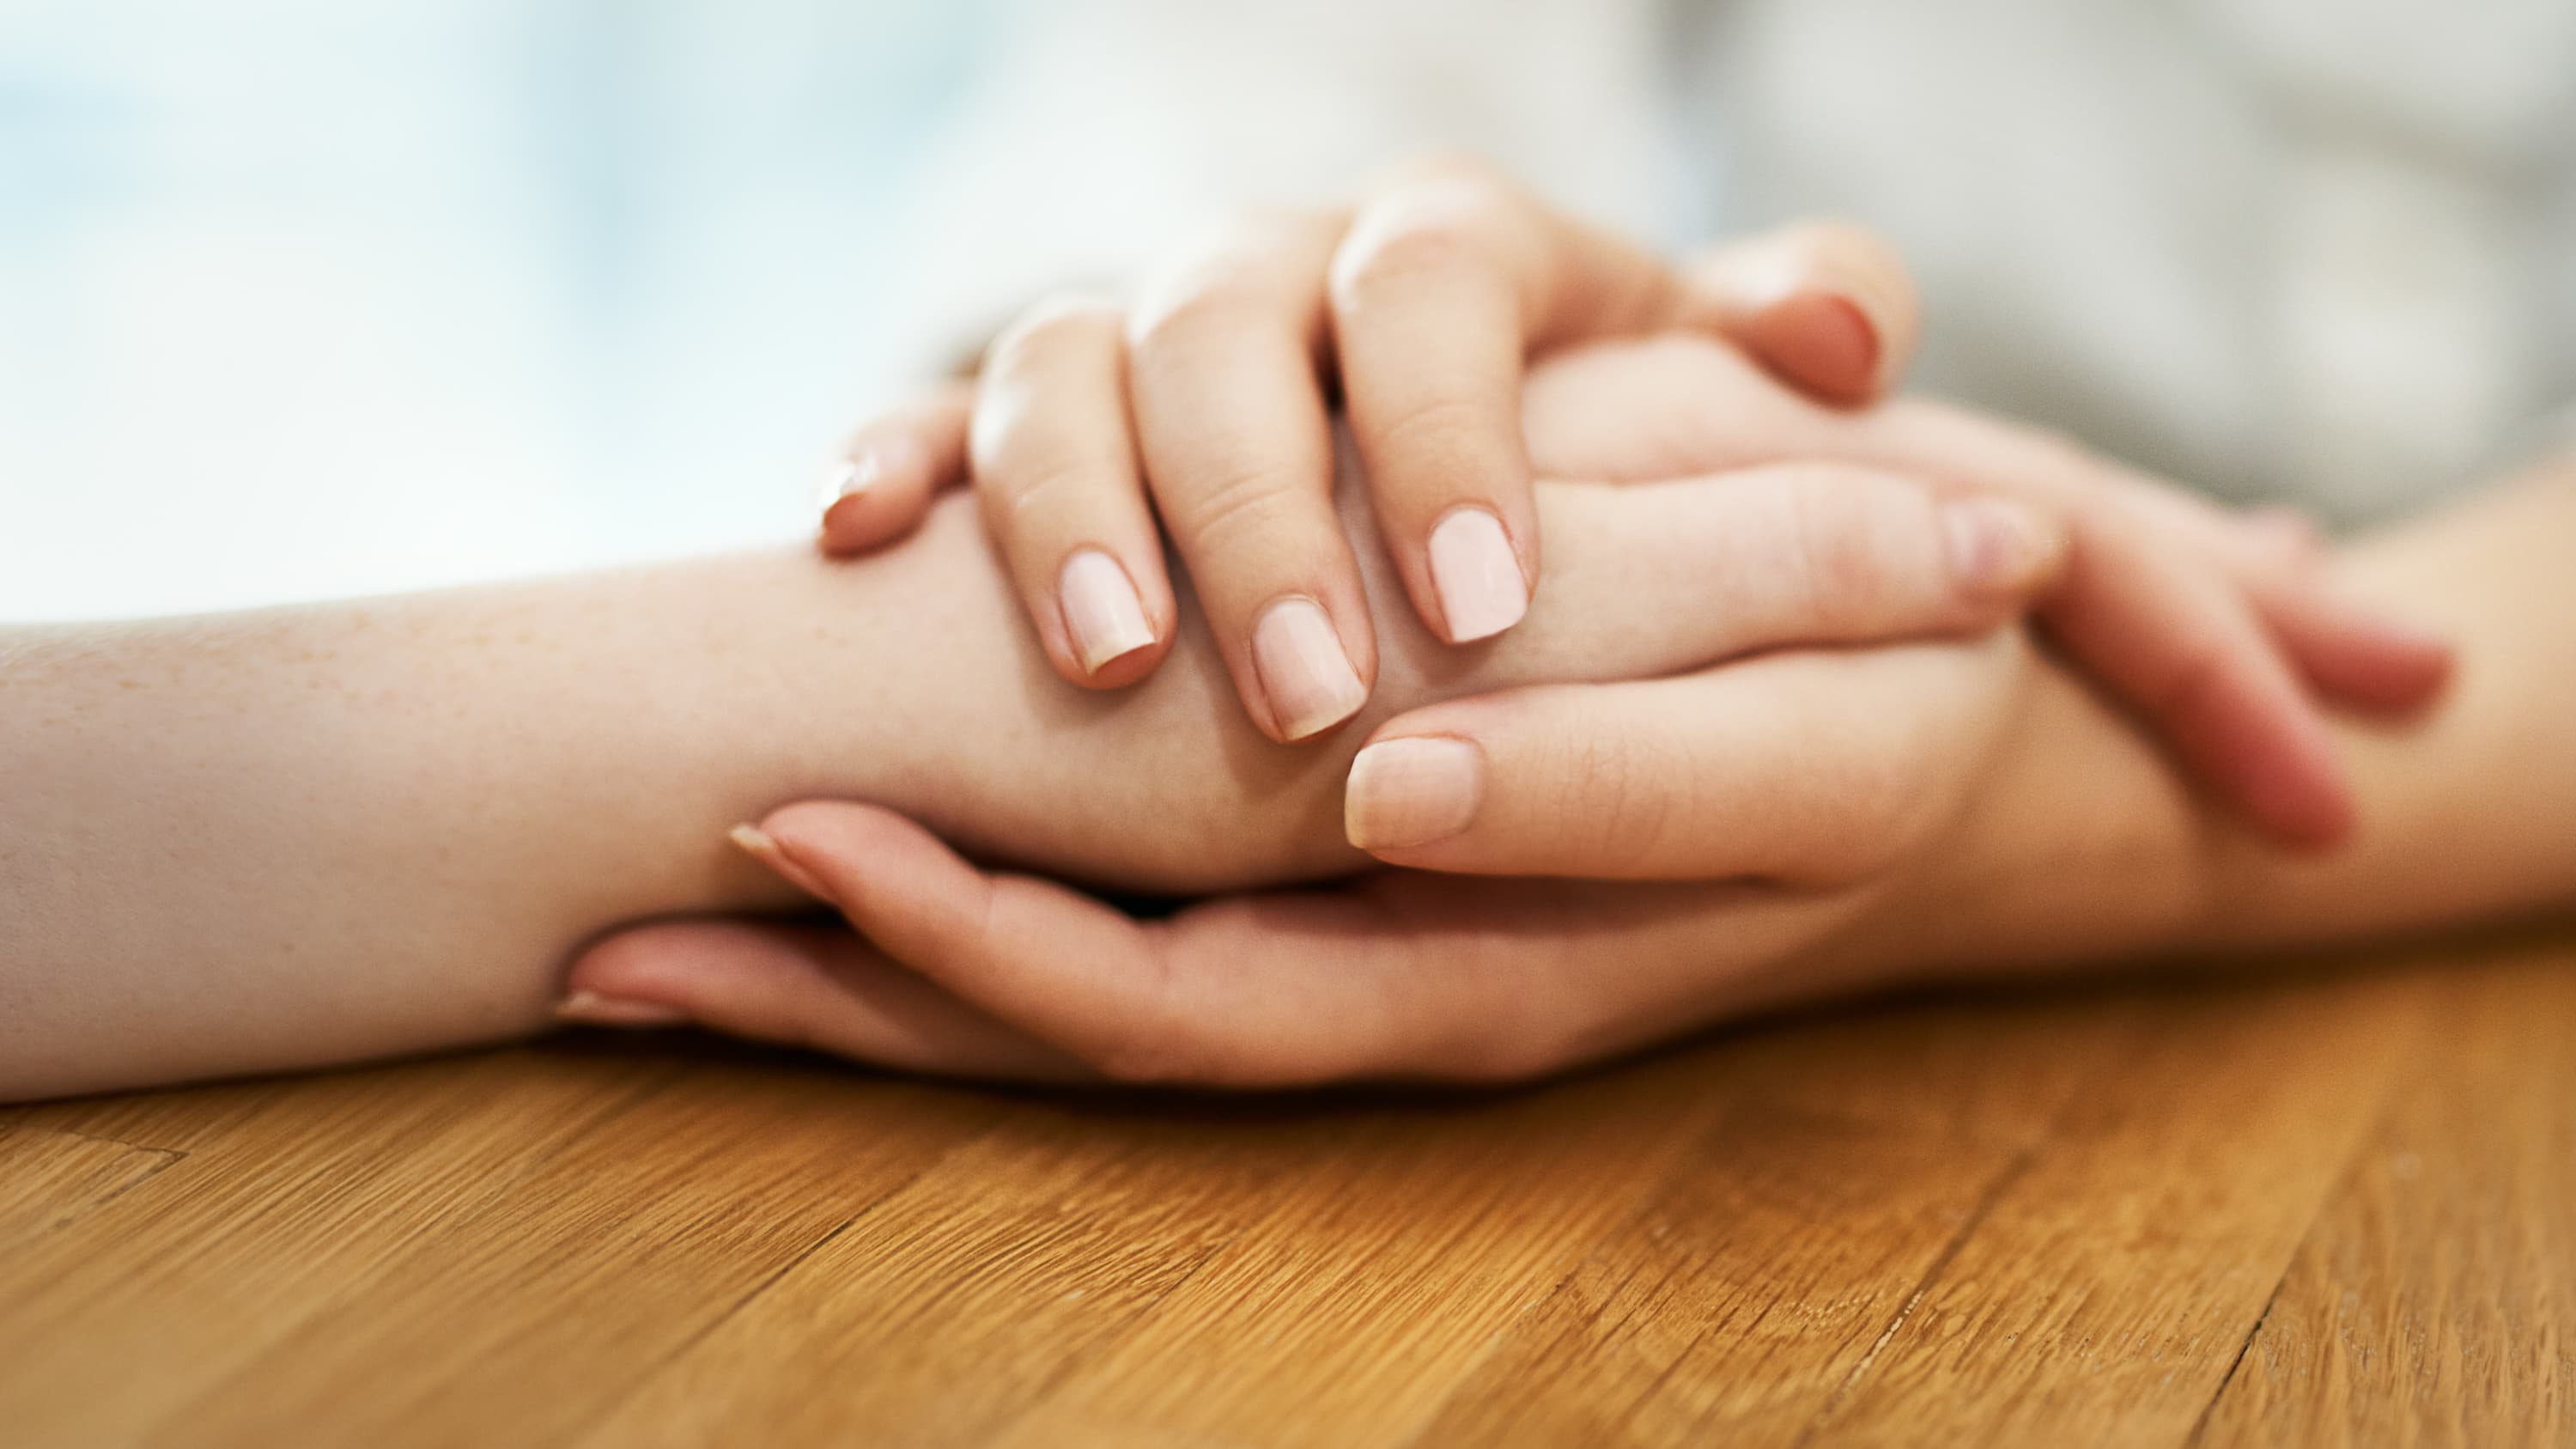 A patient is comforted by a family member holding her hand possibly following a skin lymphoma diagnosis.